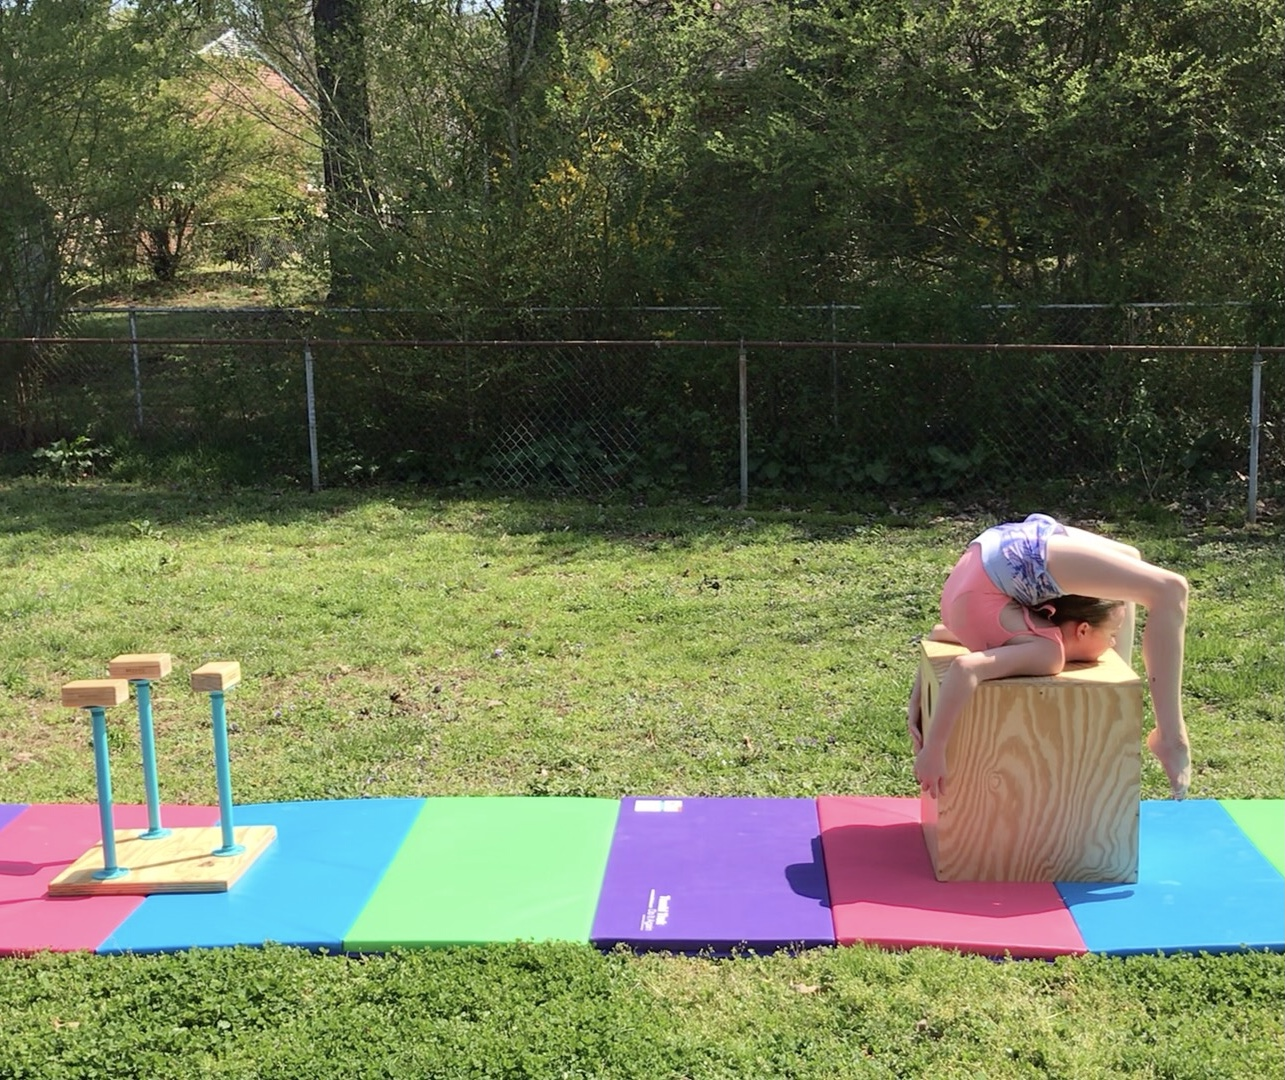 Jocelyn performs a backbend on a cube that is part of her outdoor stage